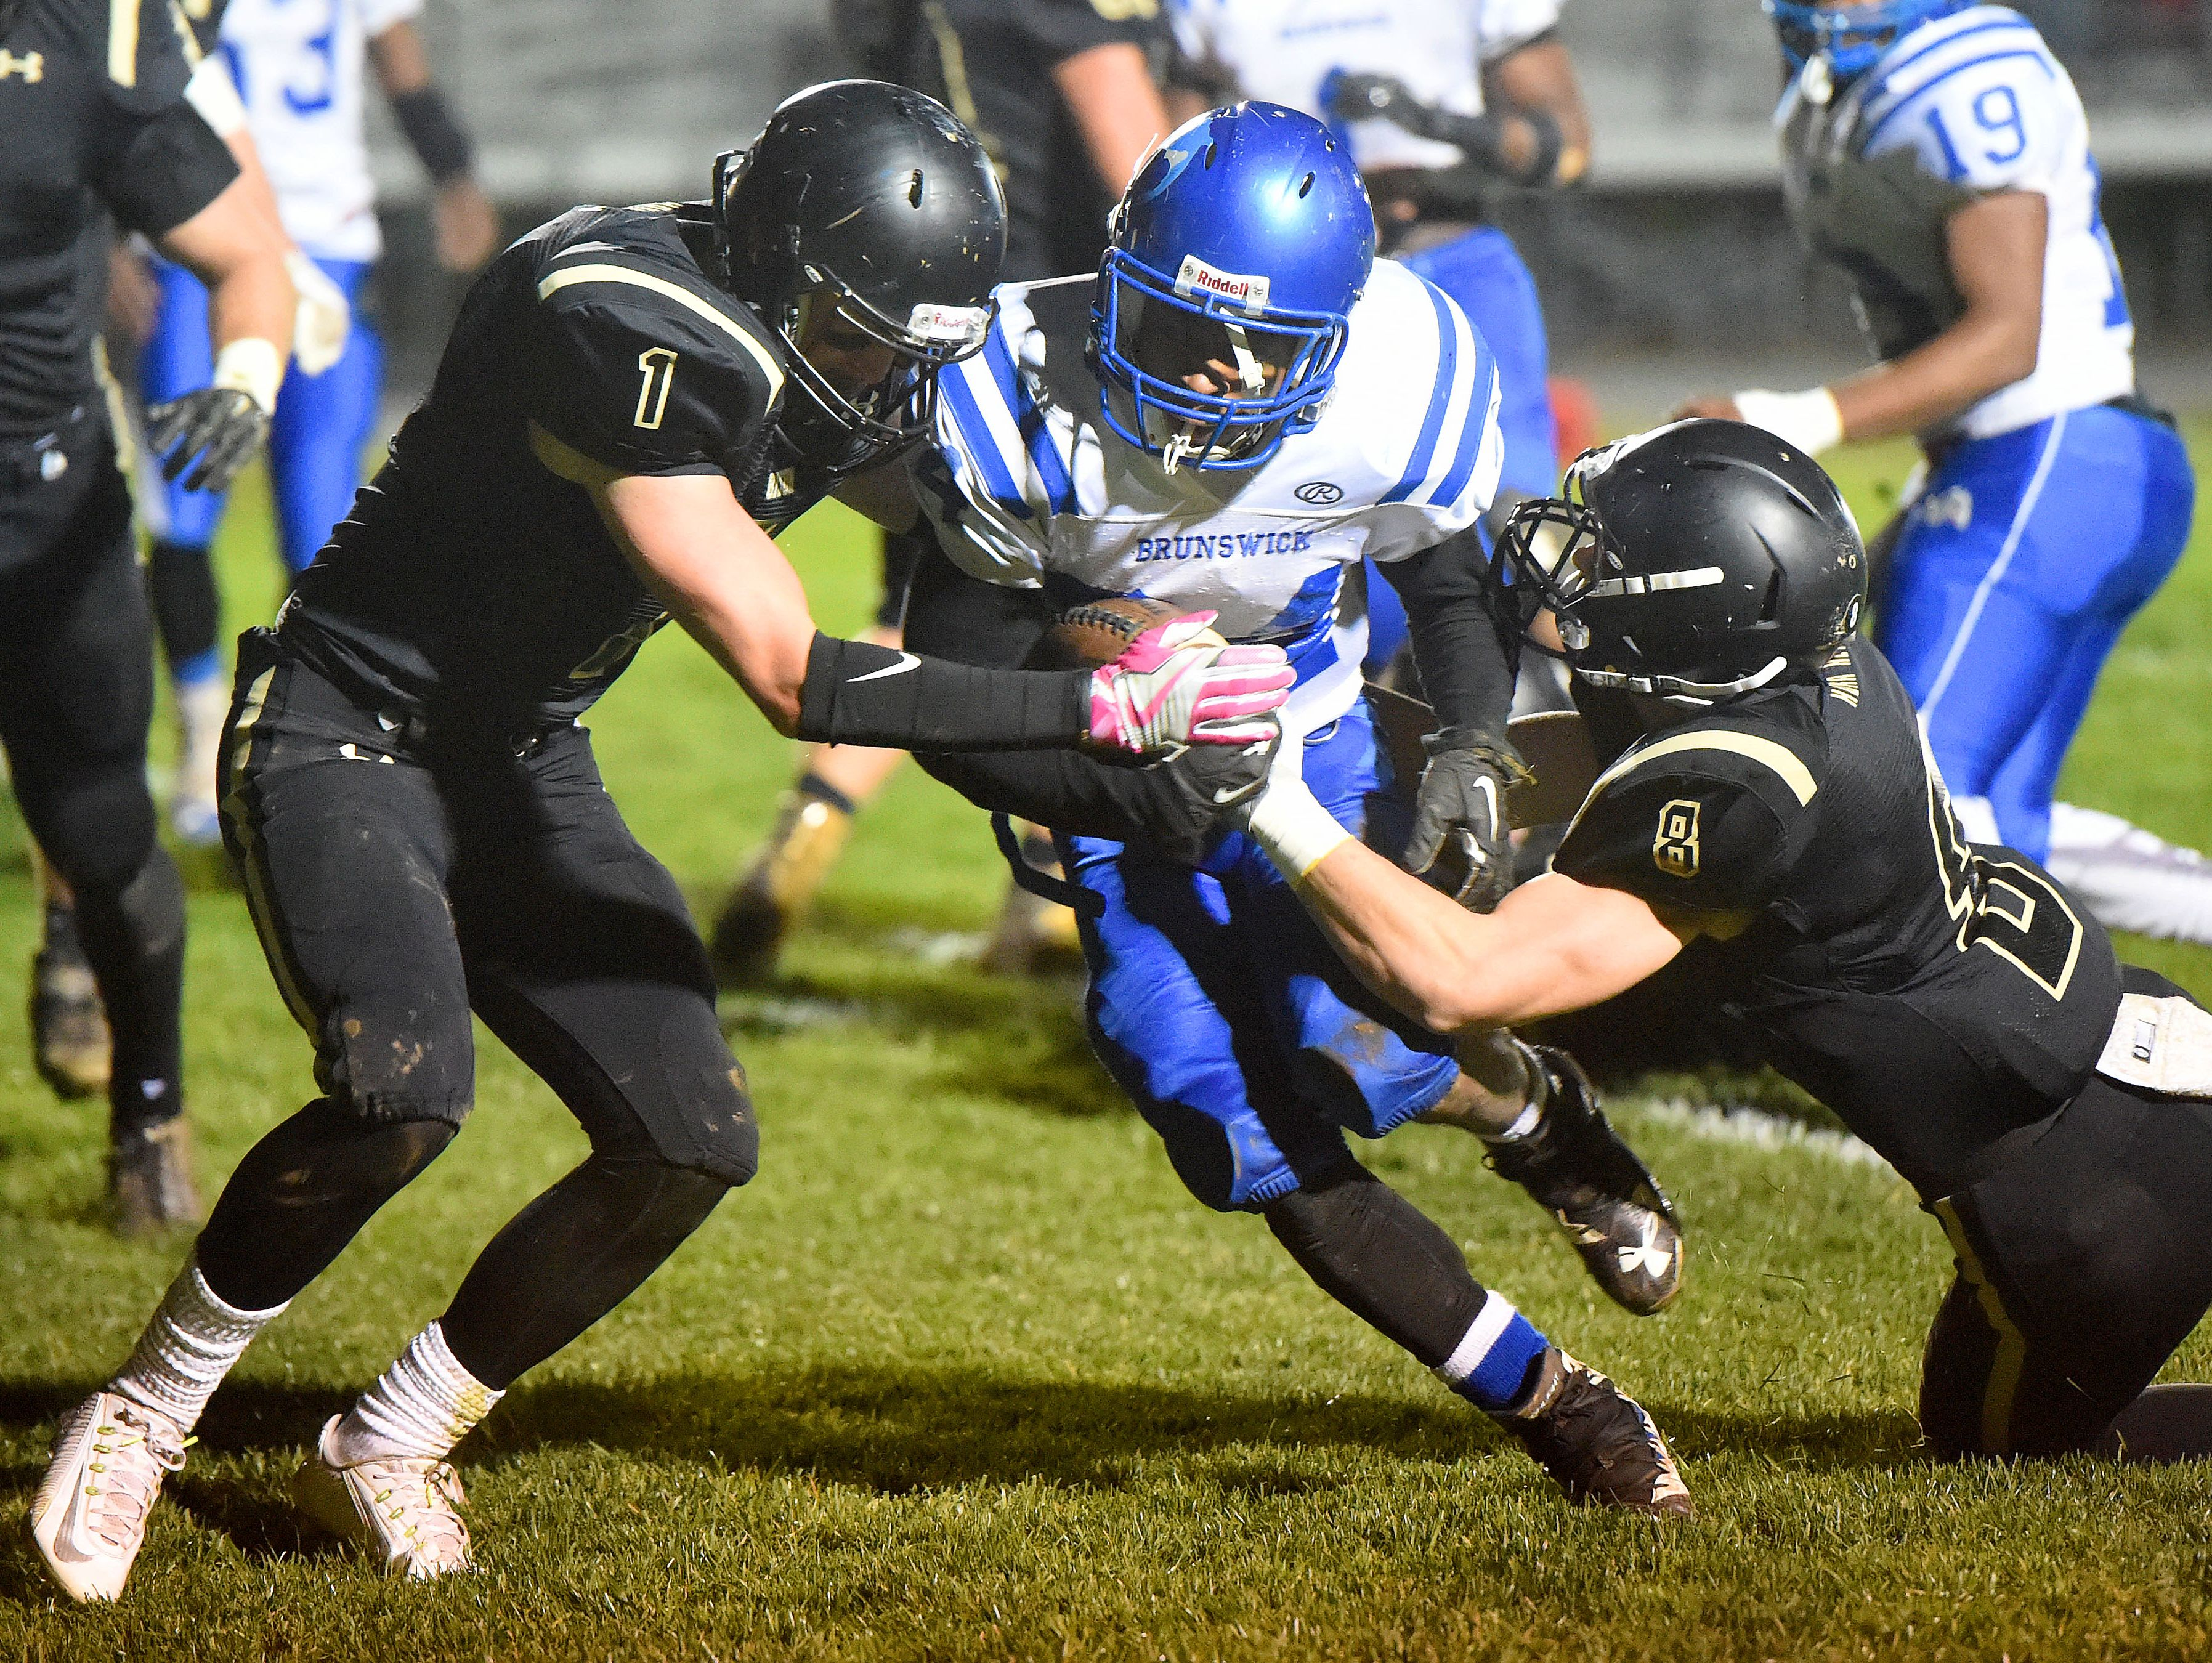 Buffalo Gap's Jake Shelton and Carter Rivenburg catch Brunswick's Ahdarius Jackson between them as they go for the tackle during a football game played in Swoope on Oct. 27, 2016.